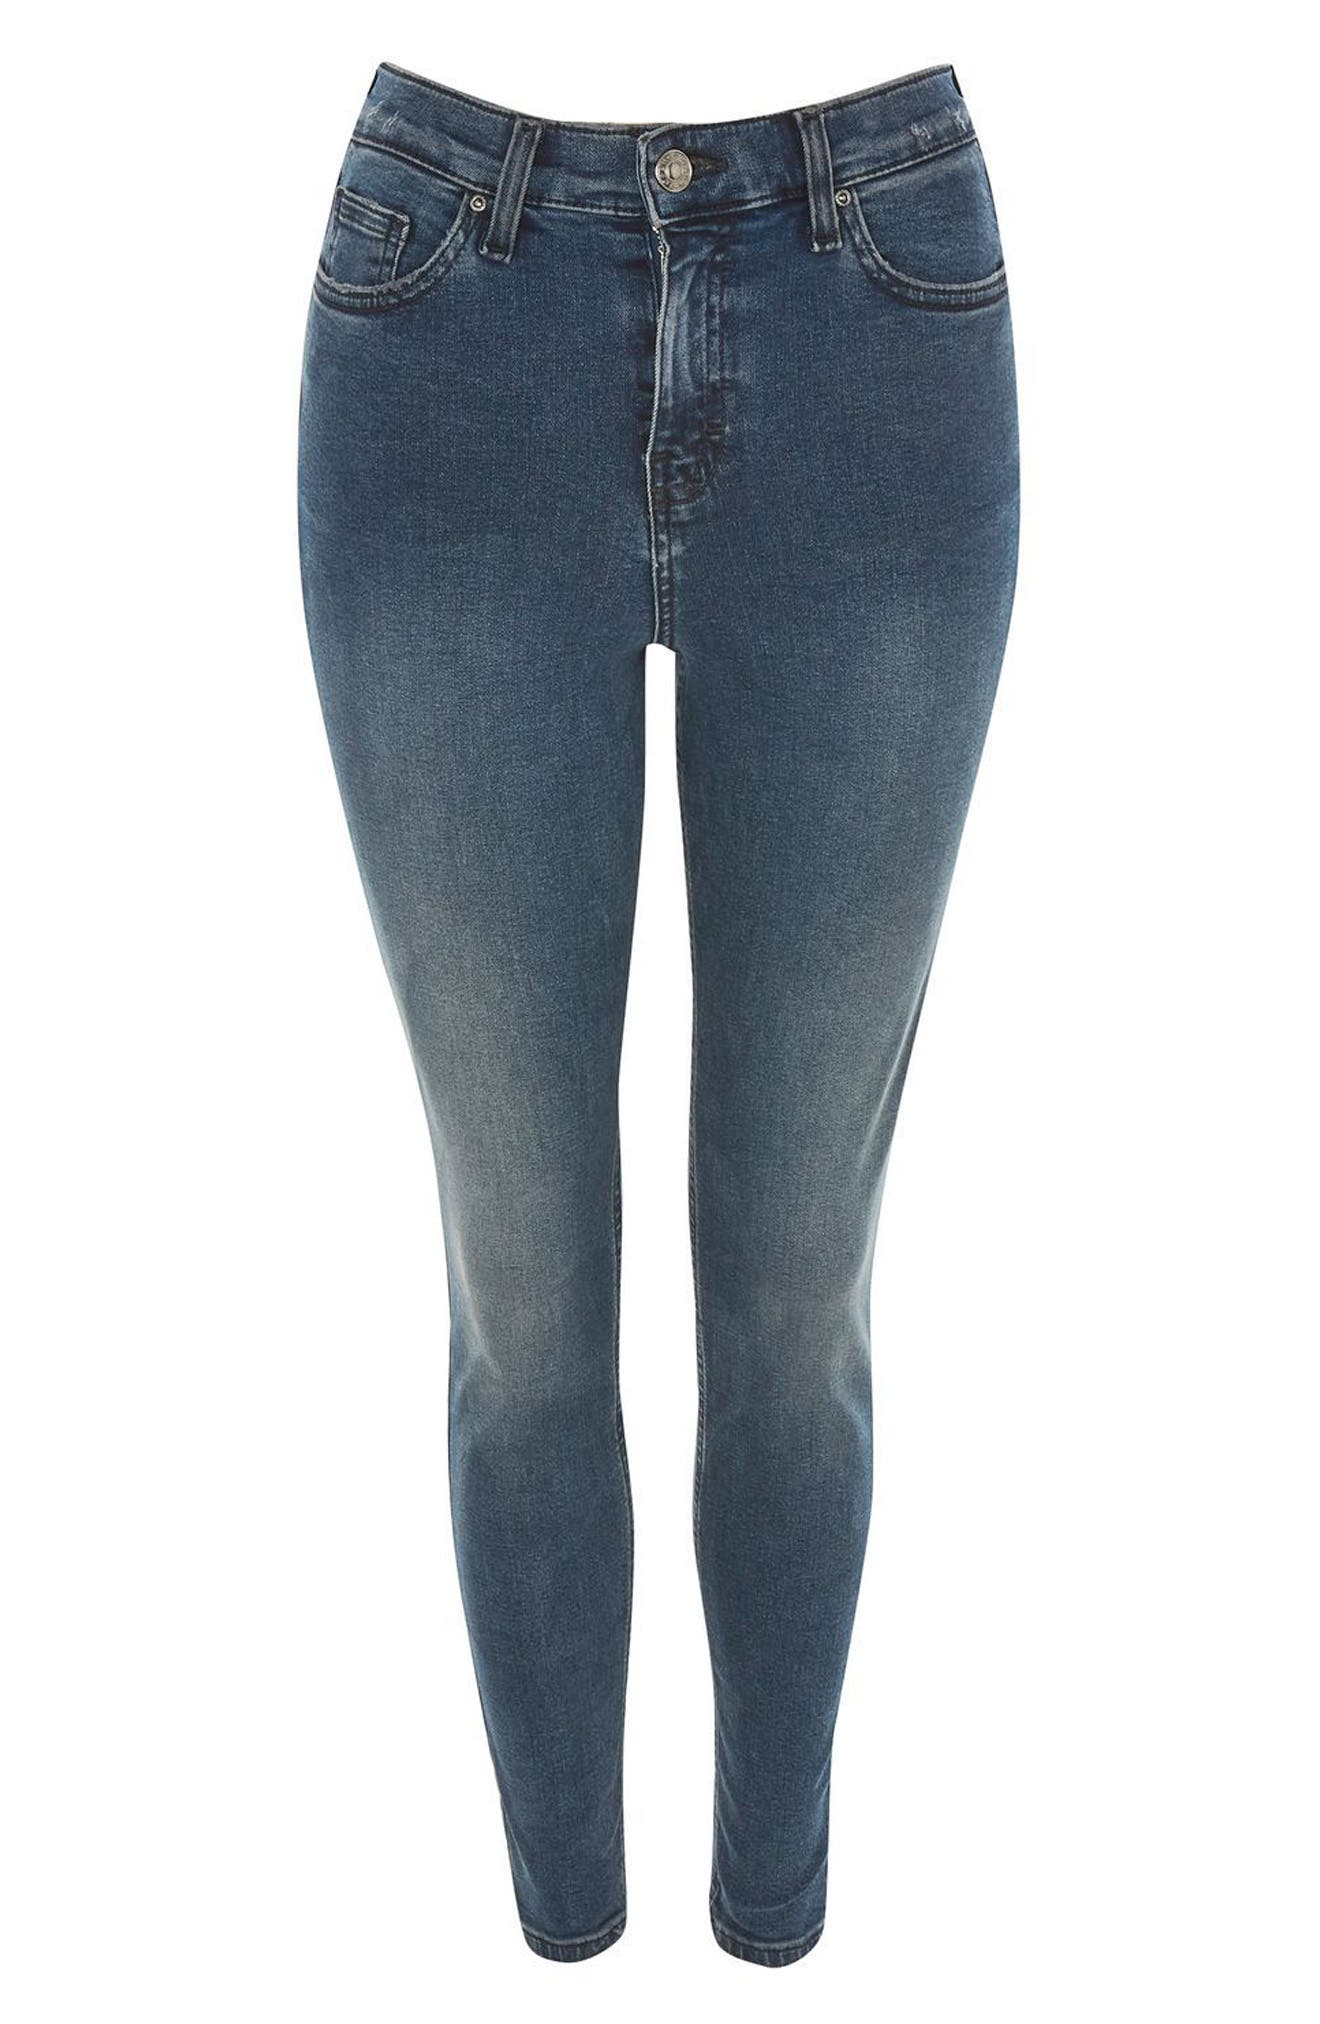 Jamie High Waist Ankle Skinny Jeans,                             Alternate thumbnail 2, color,                             410